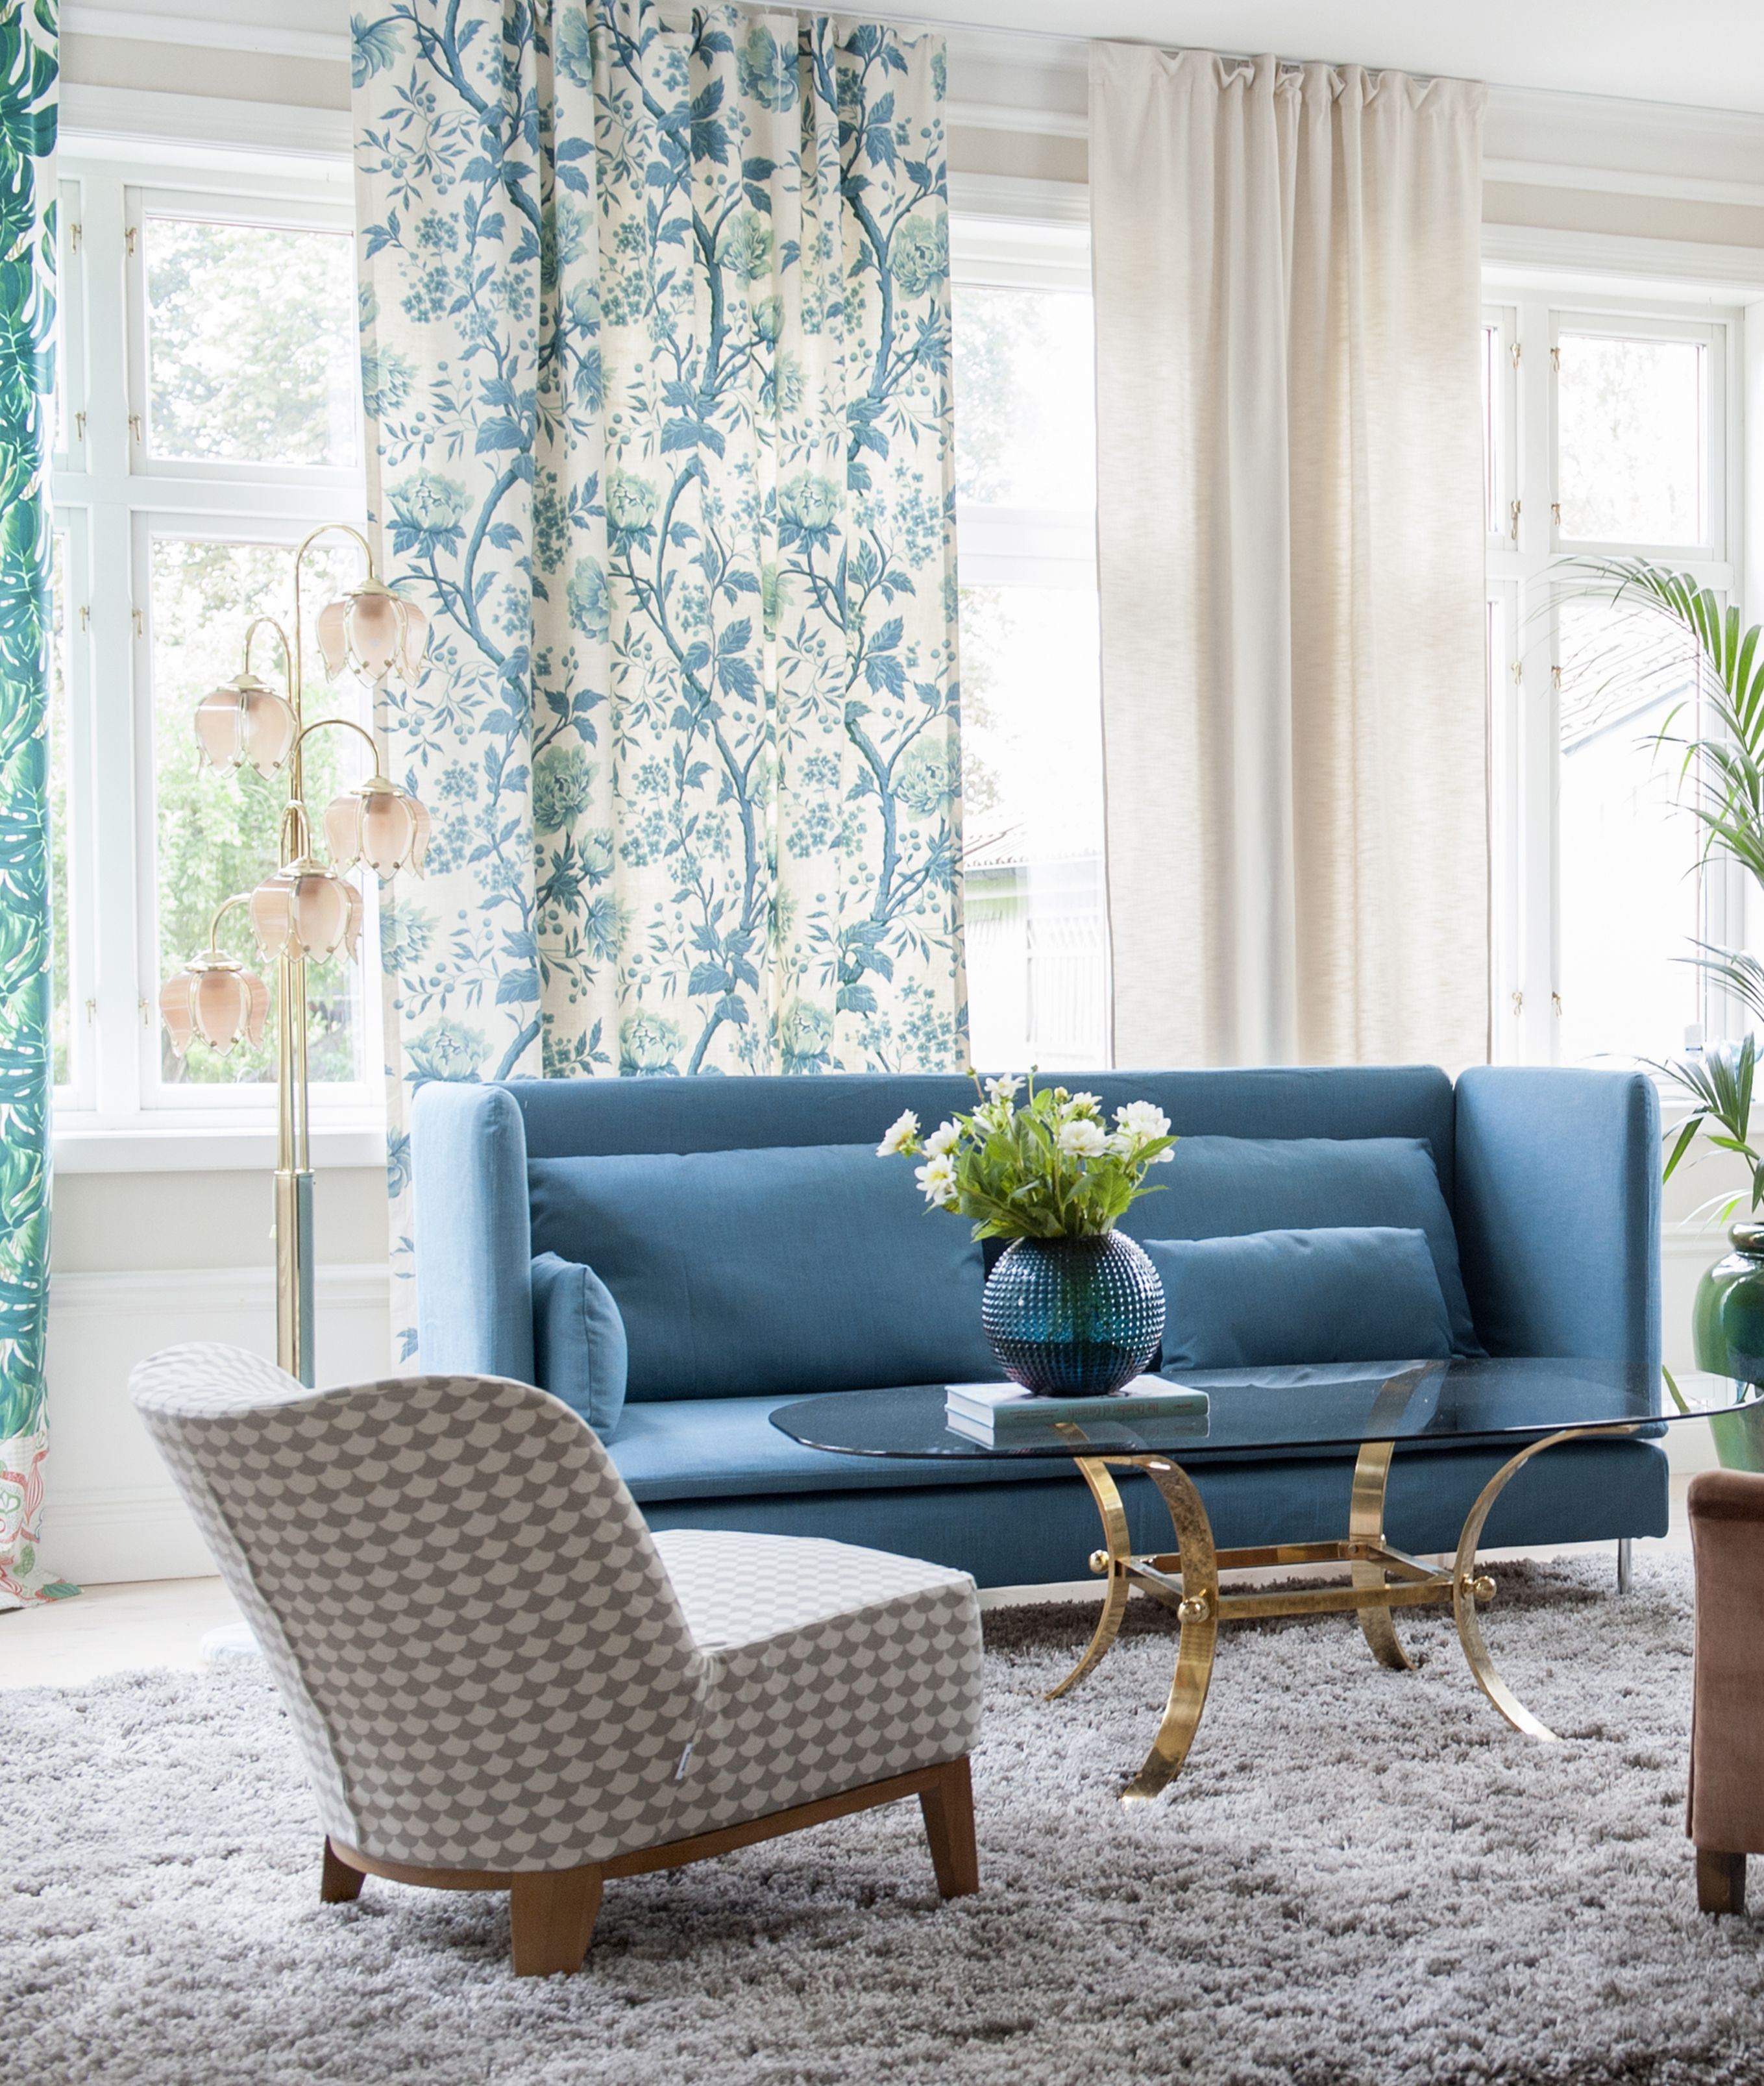 10 Stunning Teal Blue Curtains Living Room